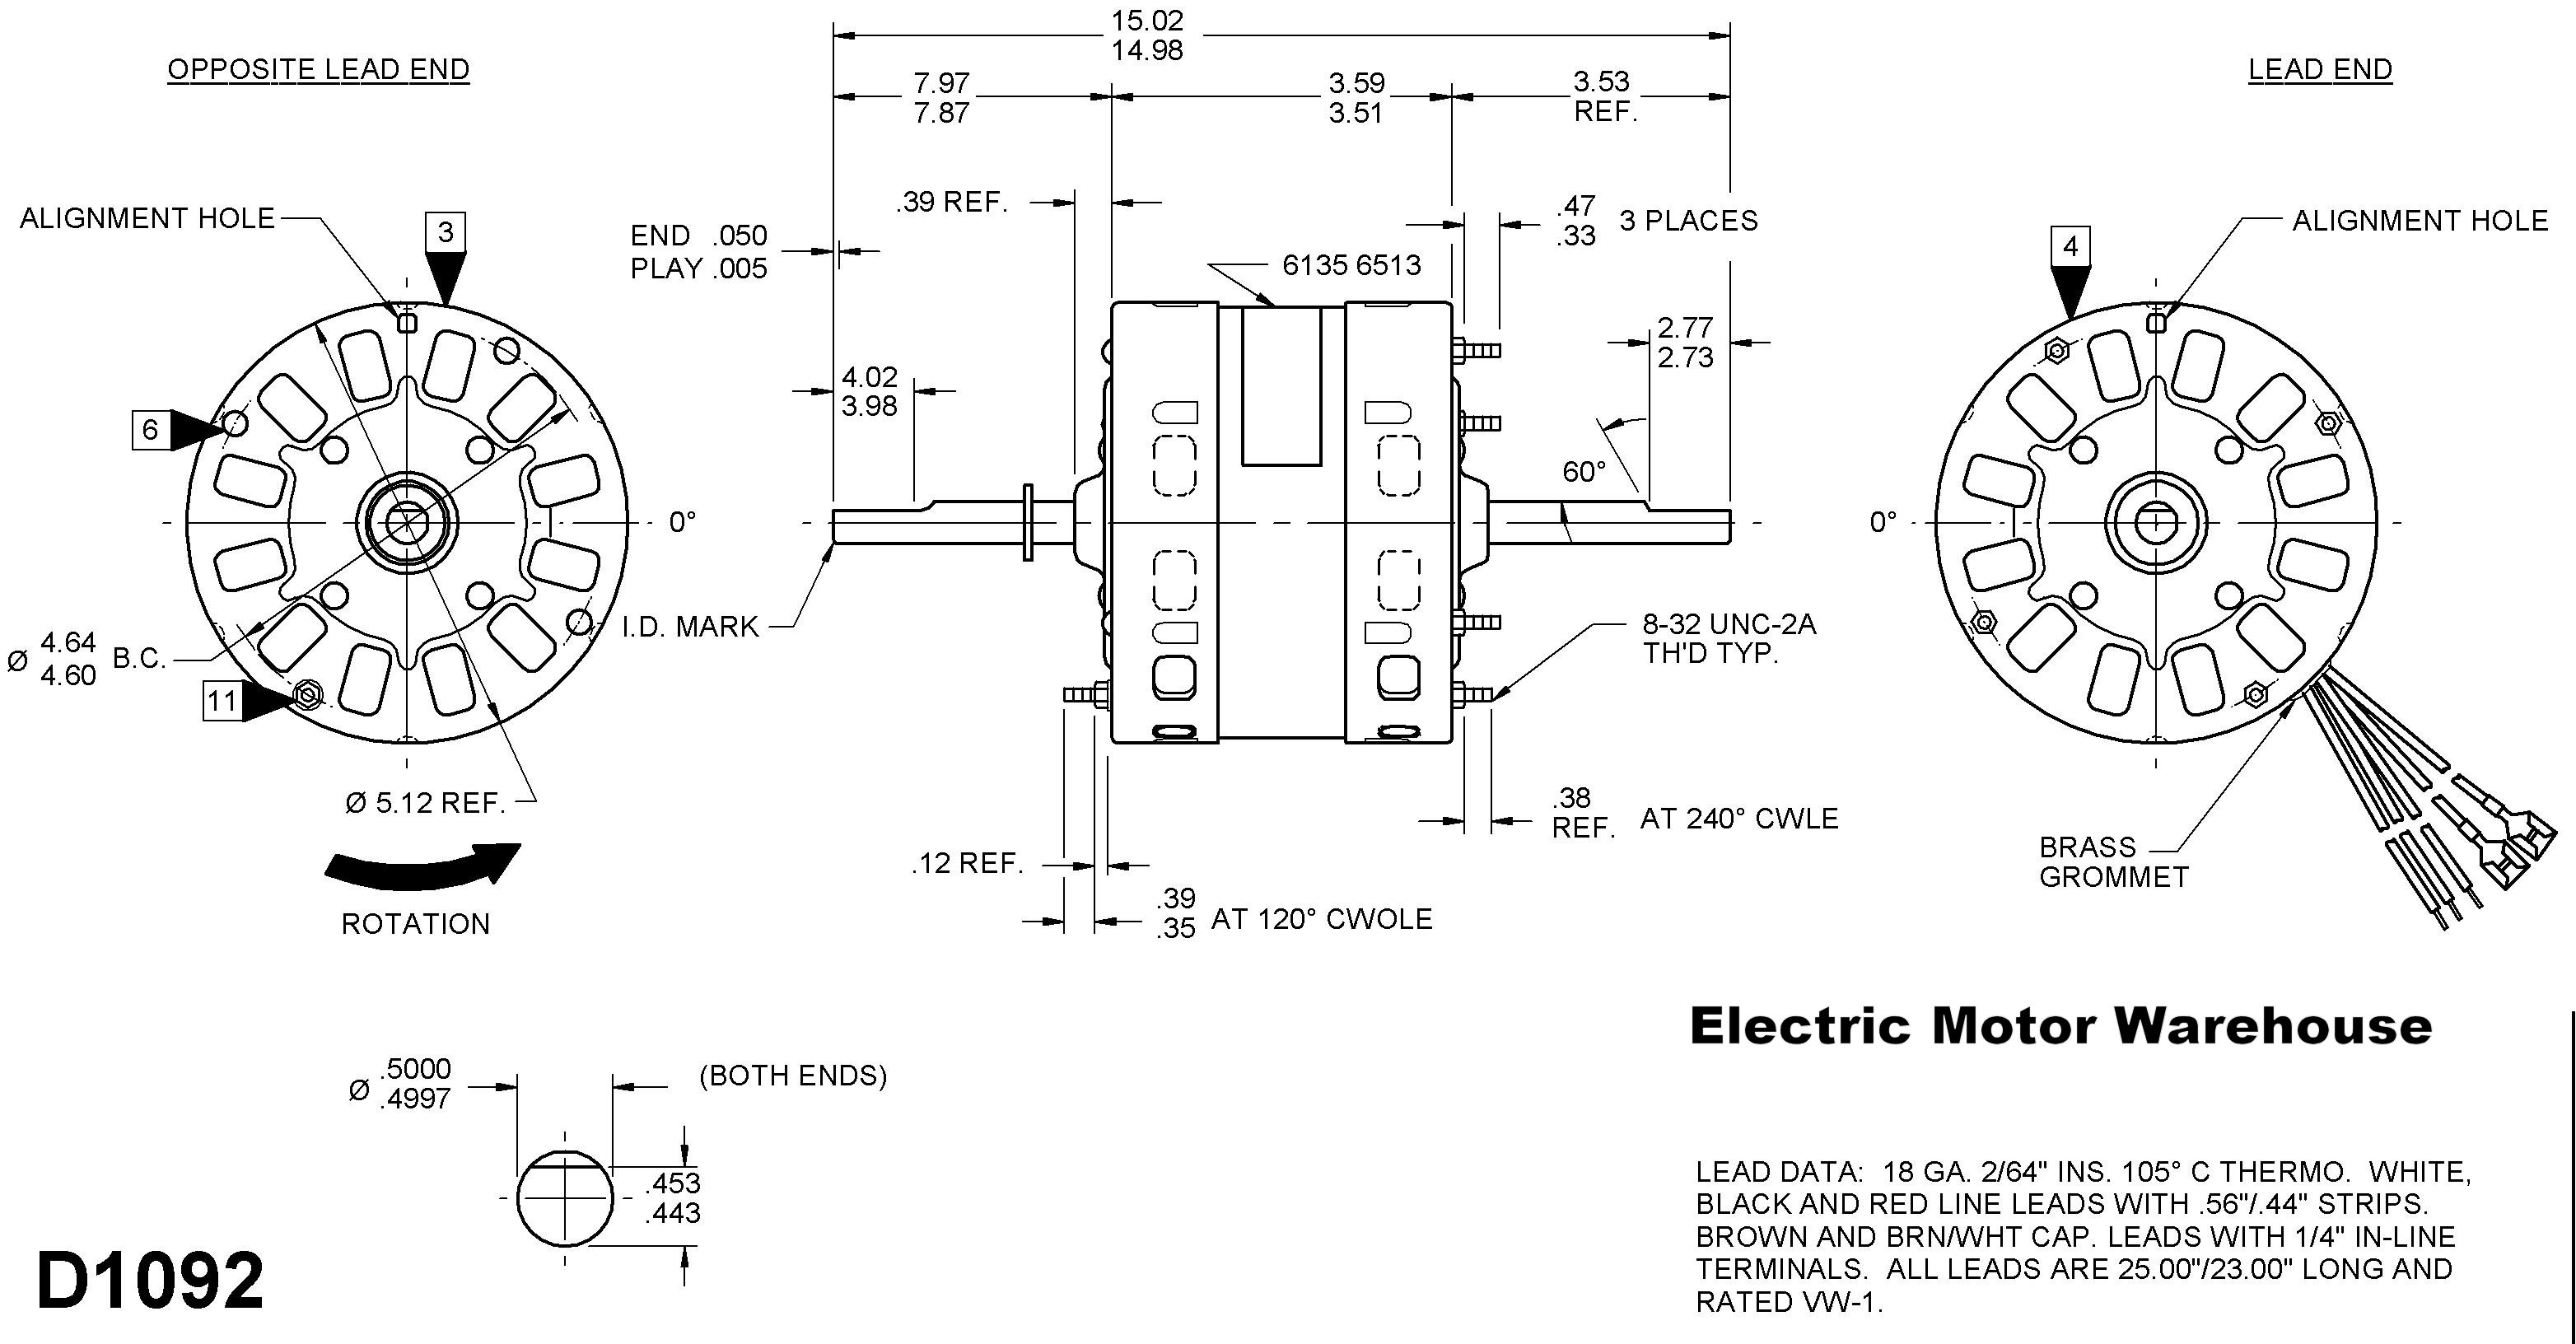 Fasco Condenser Fan Motor Wiring Diagram Schema Diagrams Air Compressor Capacitor Ac Blower Sd Picture Simple 9281